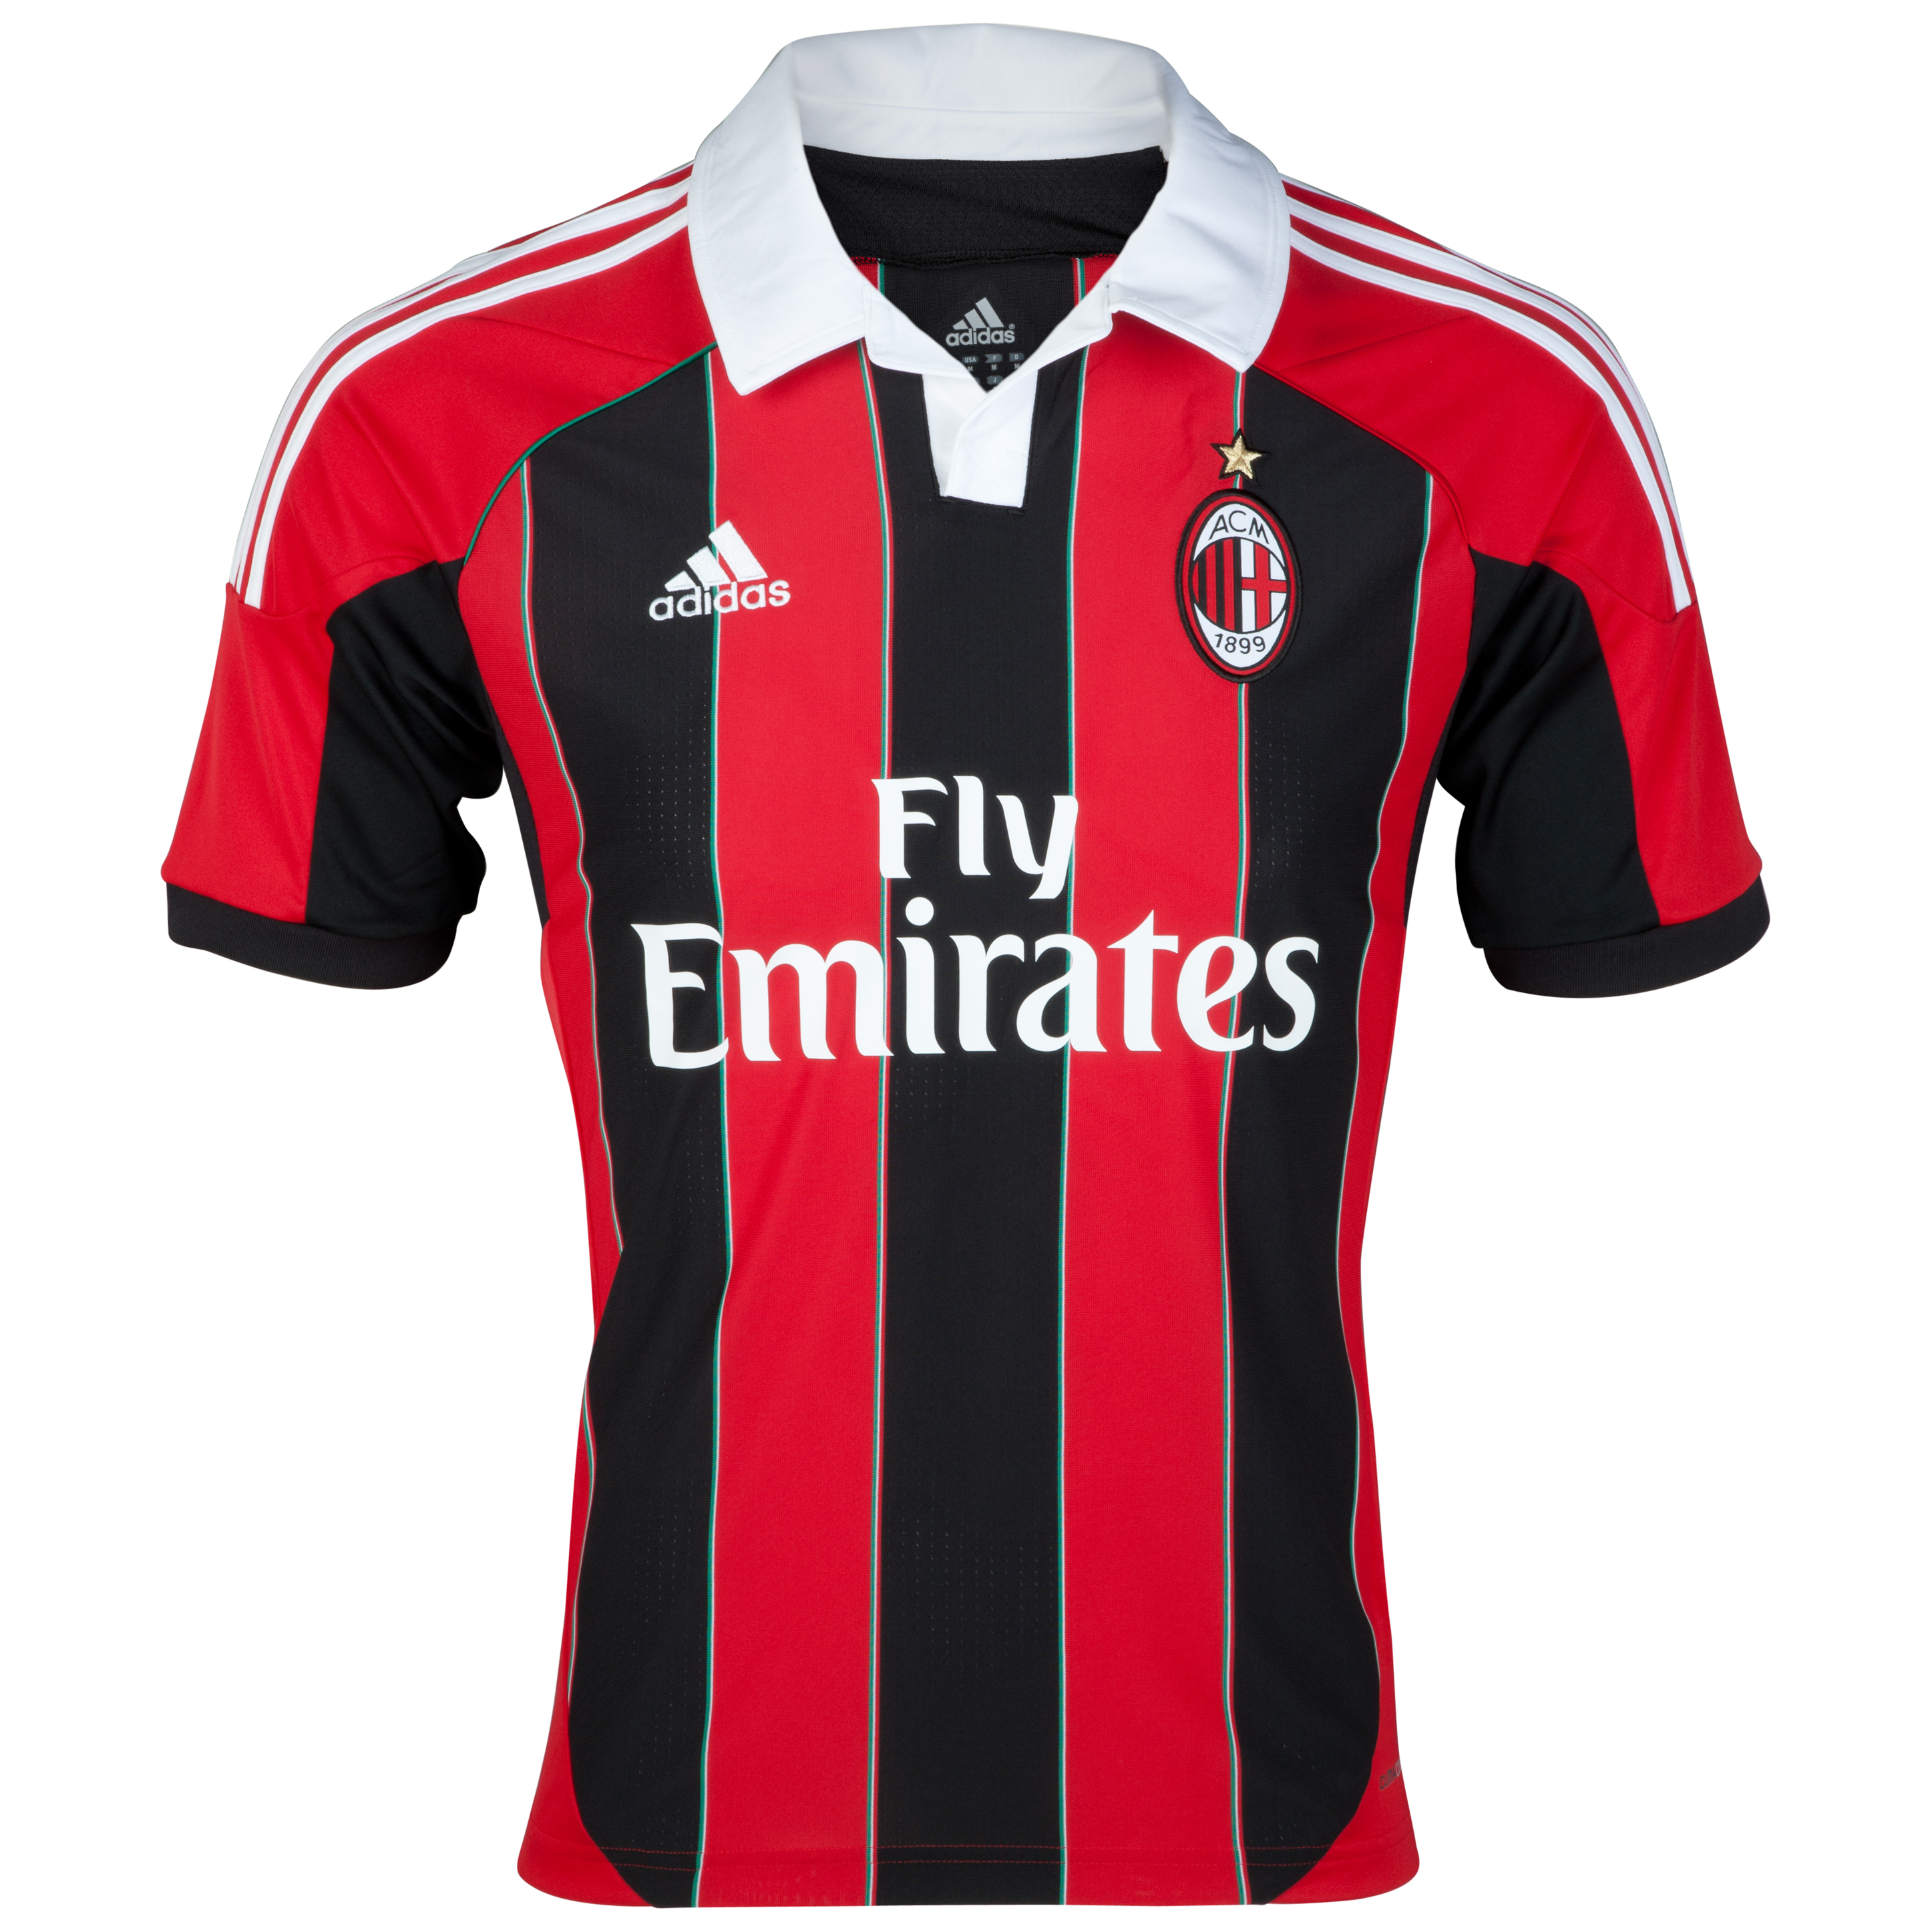 AC Milan Home/Away Short 2012/13 - Youths